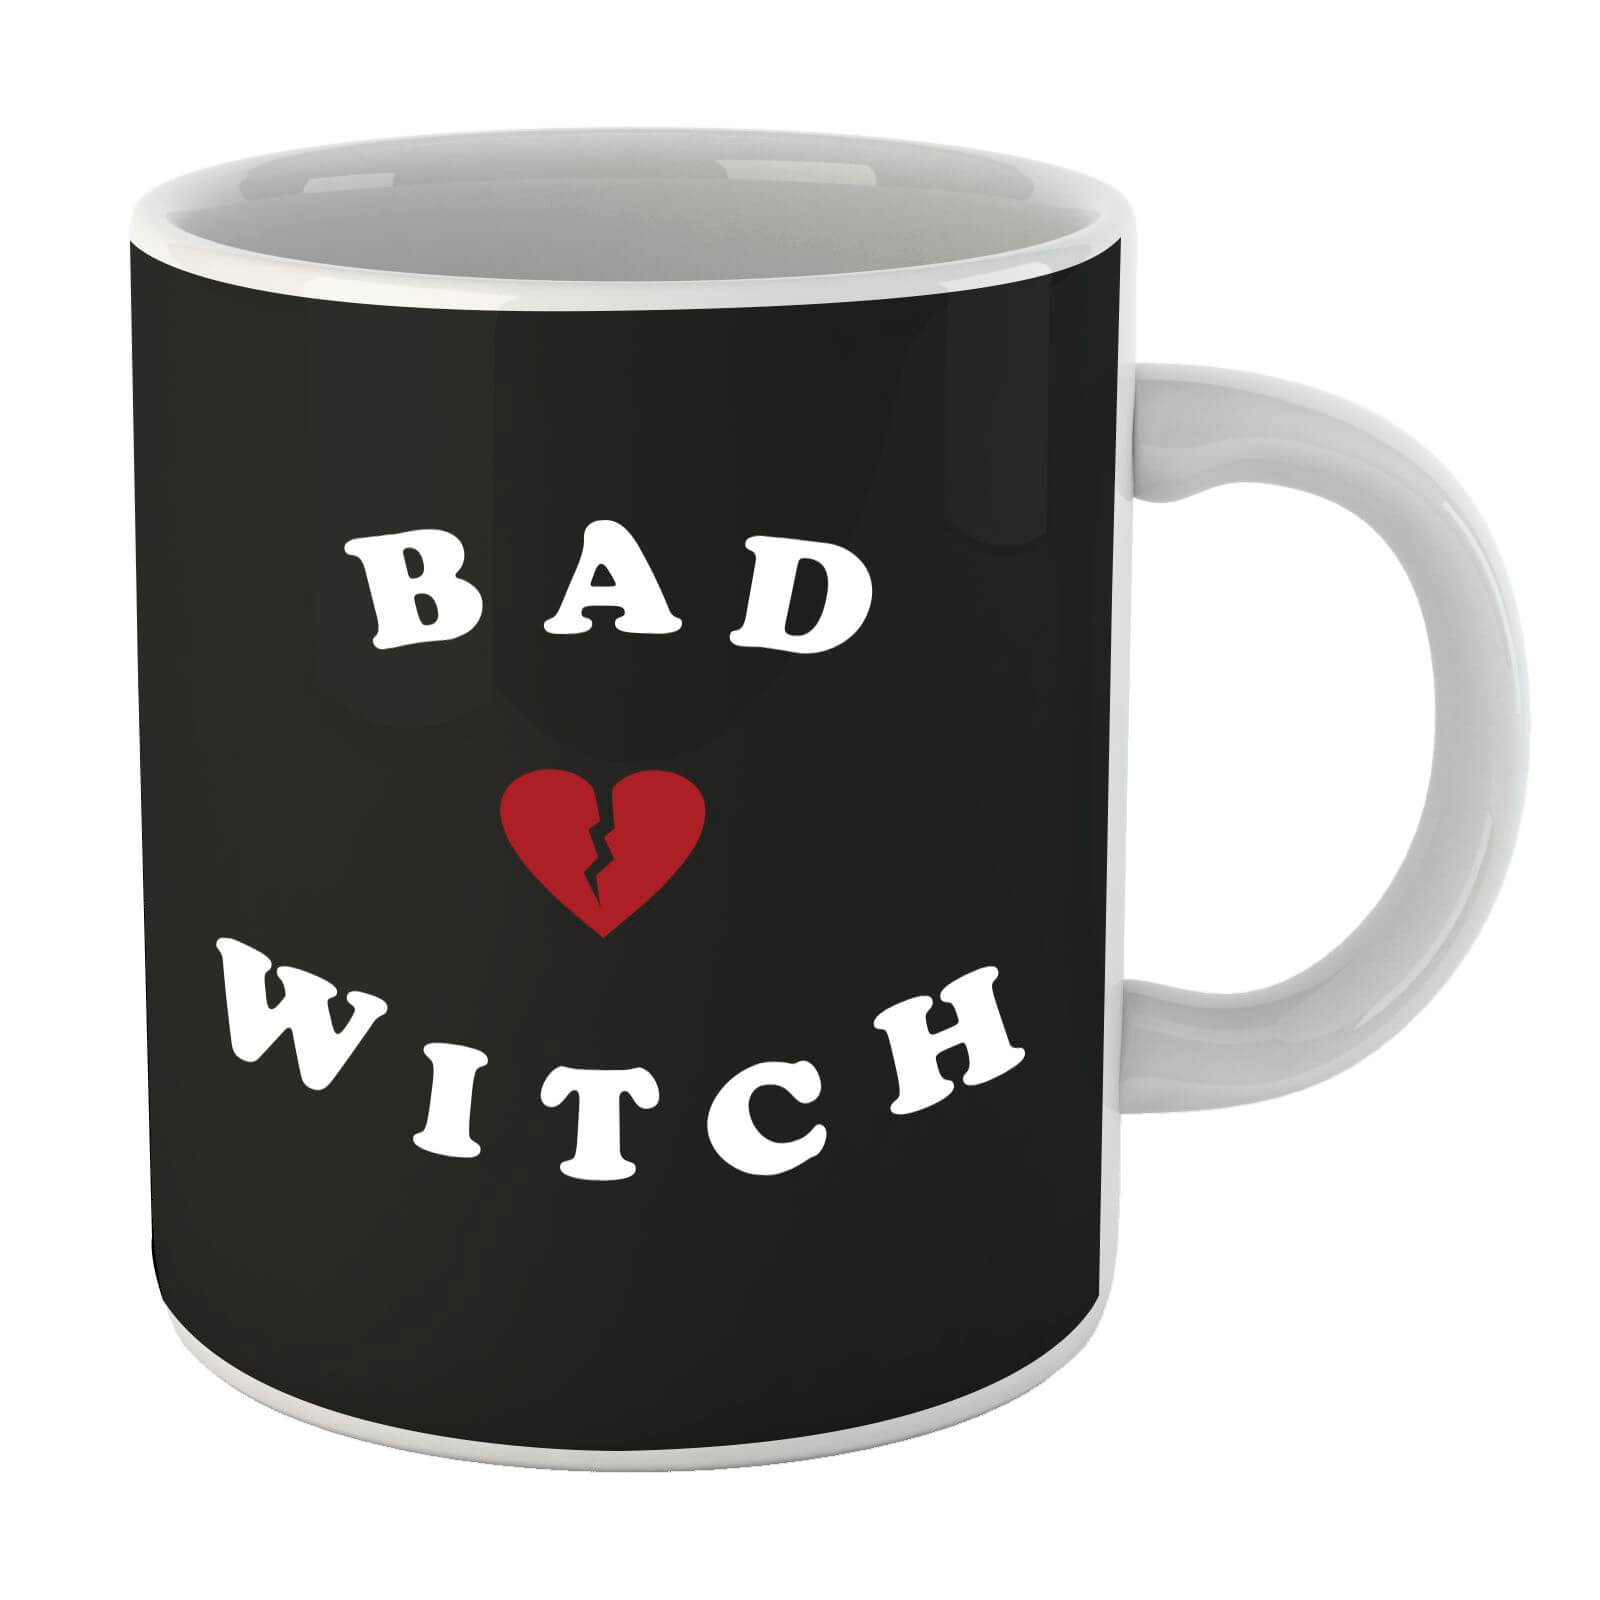 Bad Witch Mug